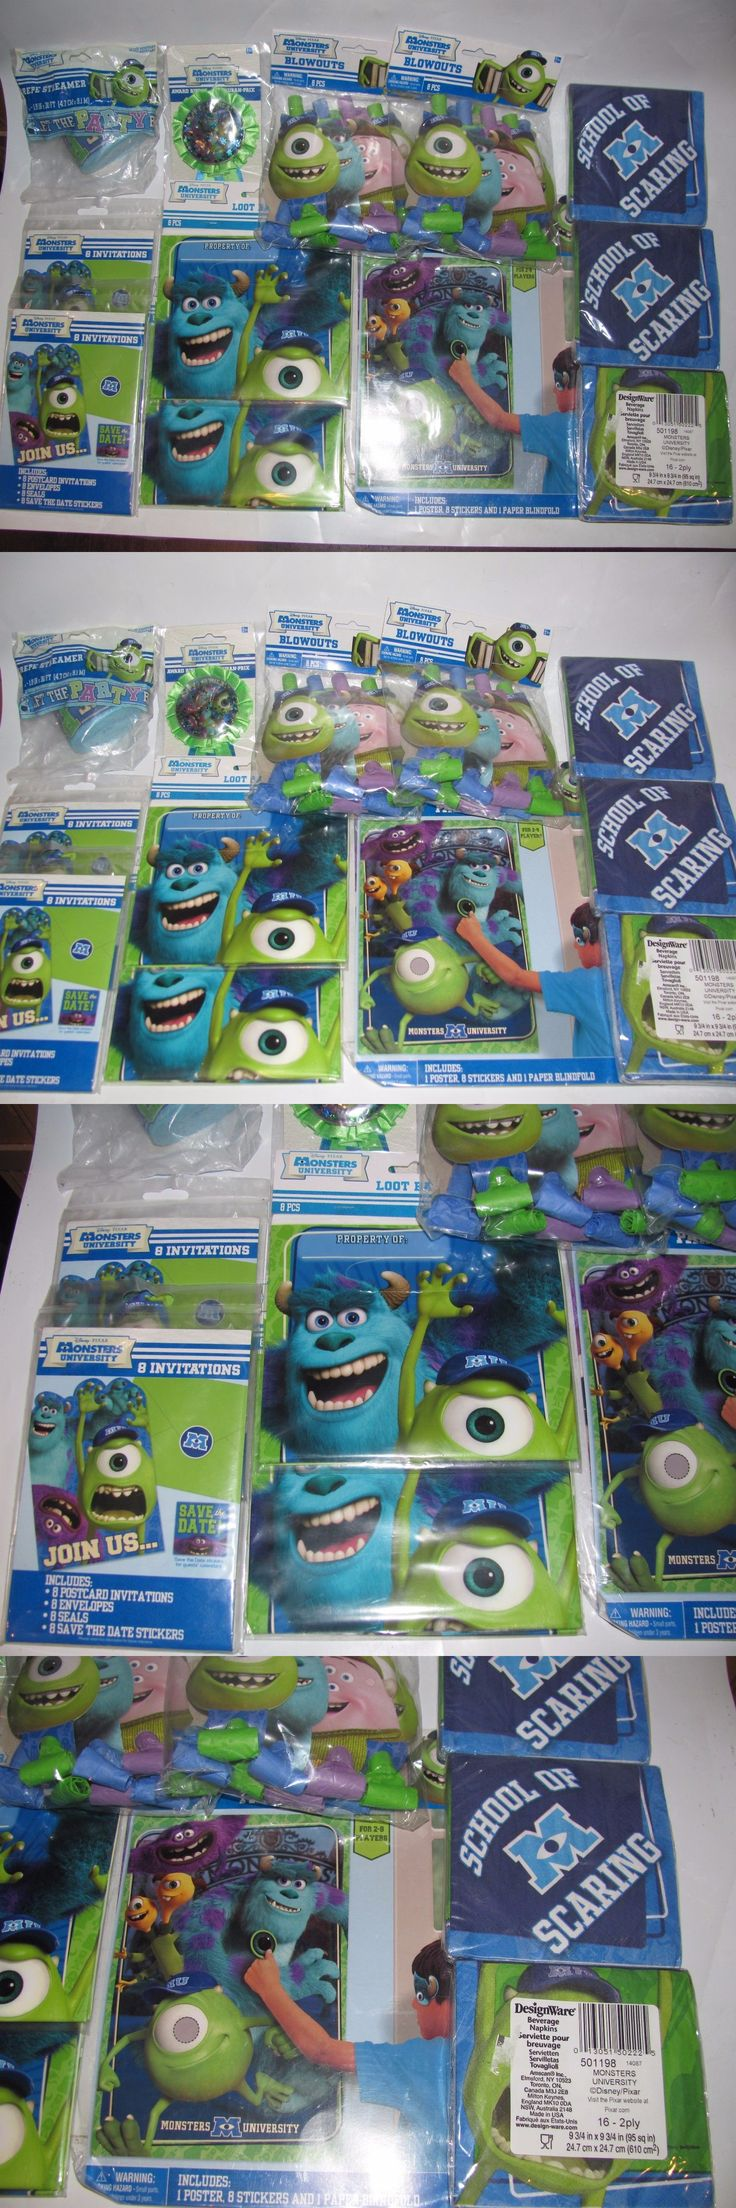 Party Decorations 170103: Lot Disney Pixar Monsters Inc University Party Supplies Invitations Decor Bags -> BUY IT NOW ONLY: $59.98 on eBay!